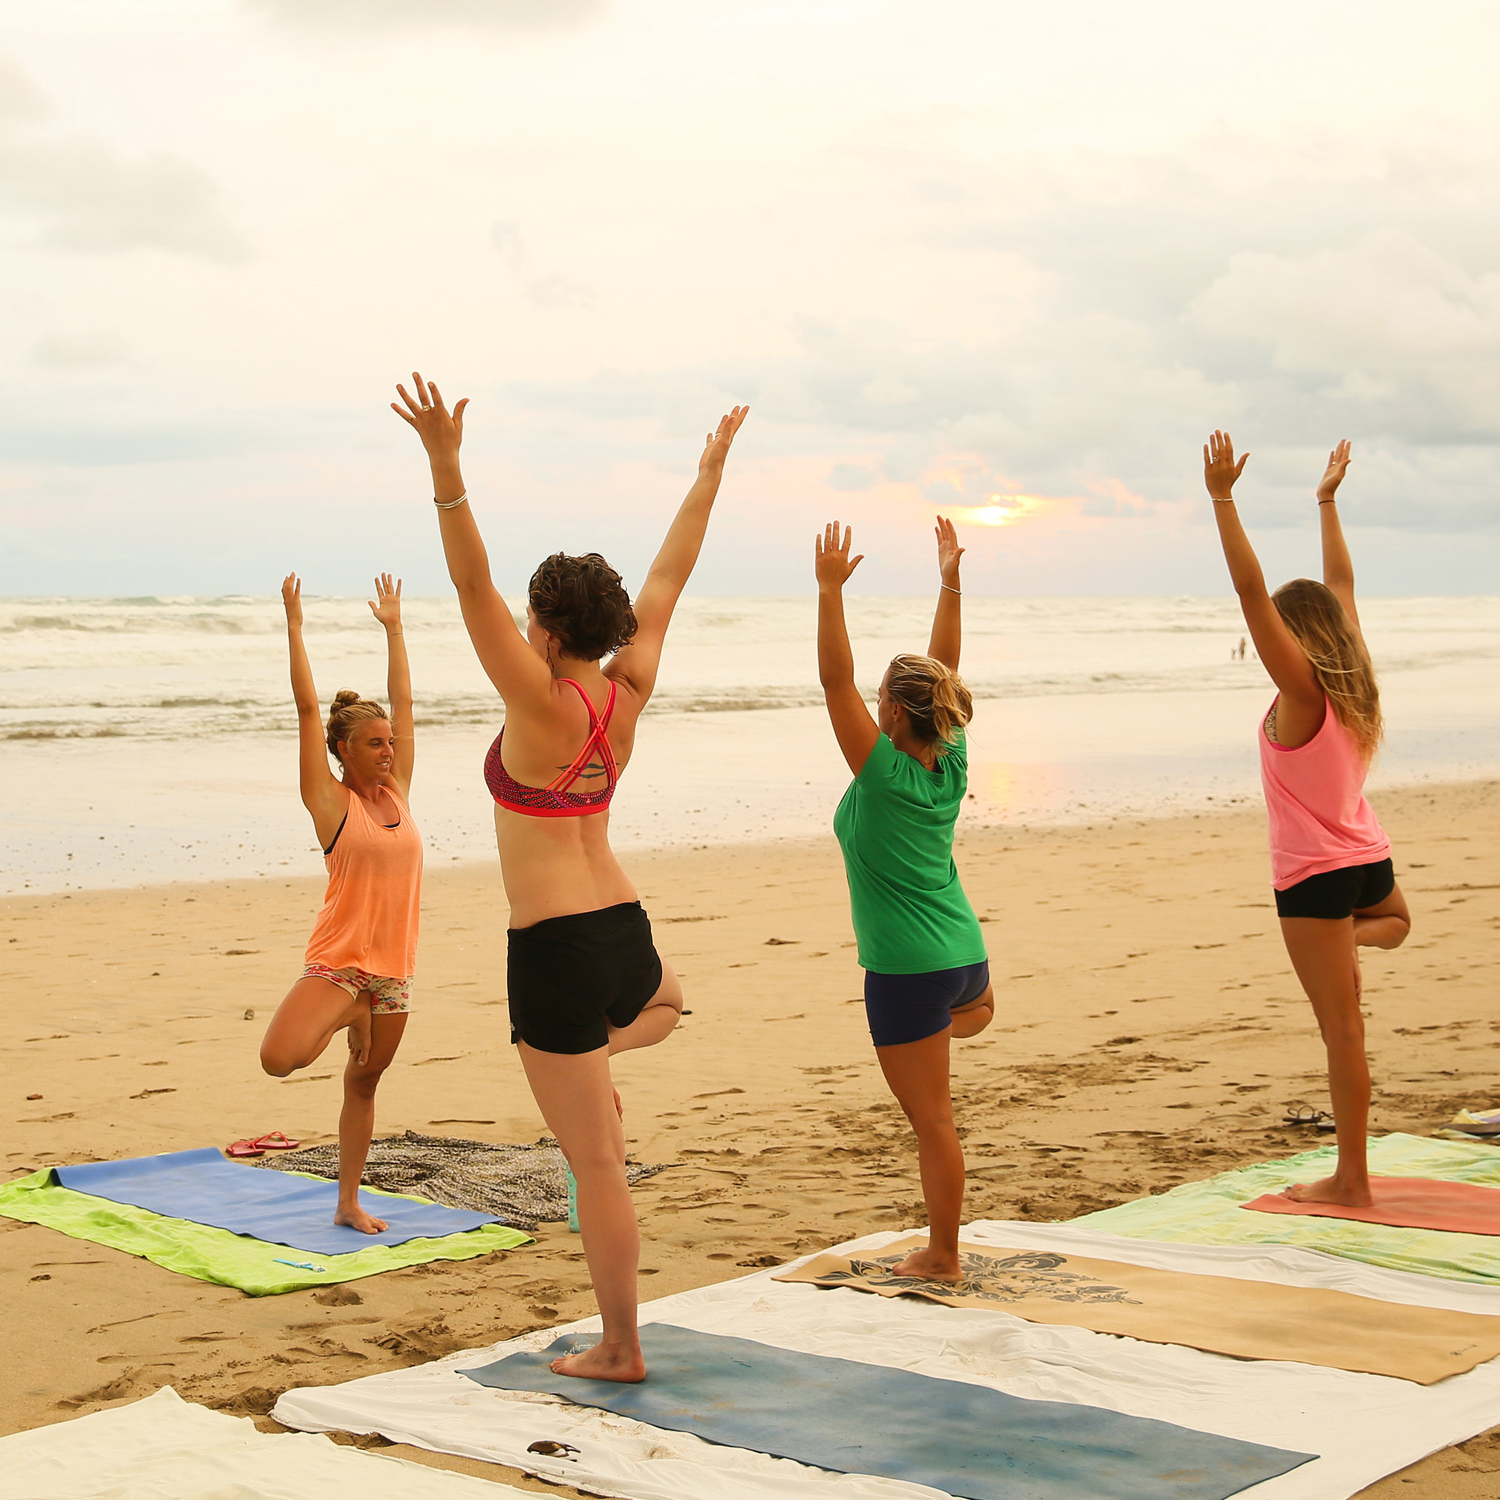 YOGA - We offer yoga classes everyday of the retreat. Our instructor will be teaching a Iyengar and Vinyasa flow with a focus flexibility, balance and breath-based yoga poses that help prepare your body before surfing and/or restorative poses for after surfing.